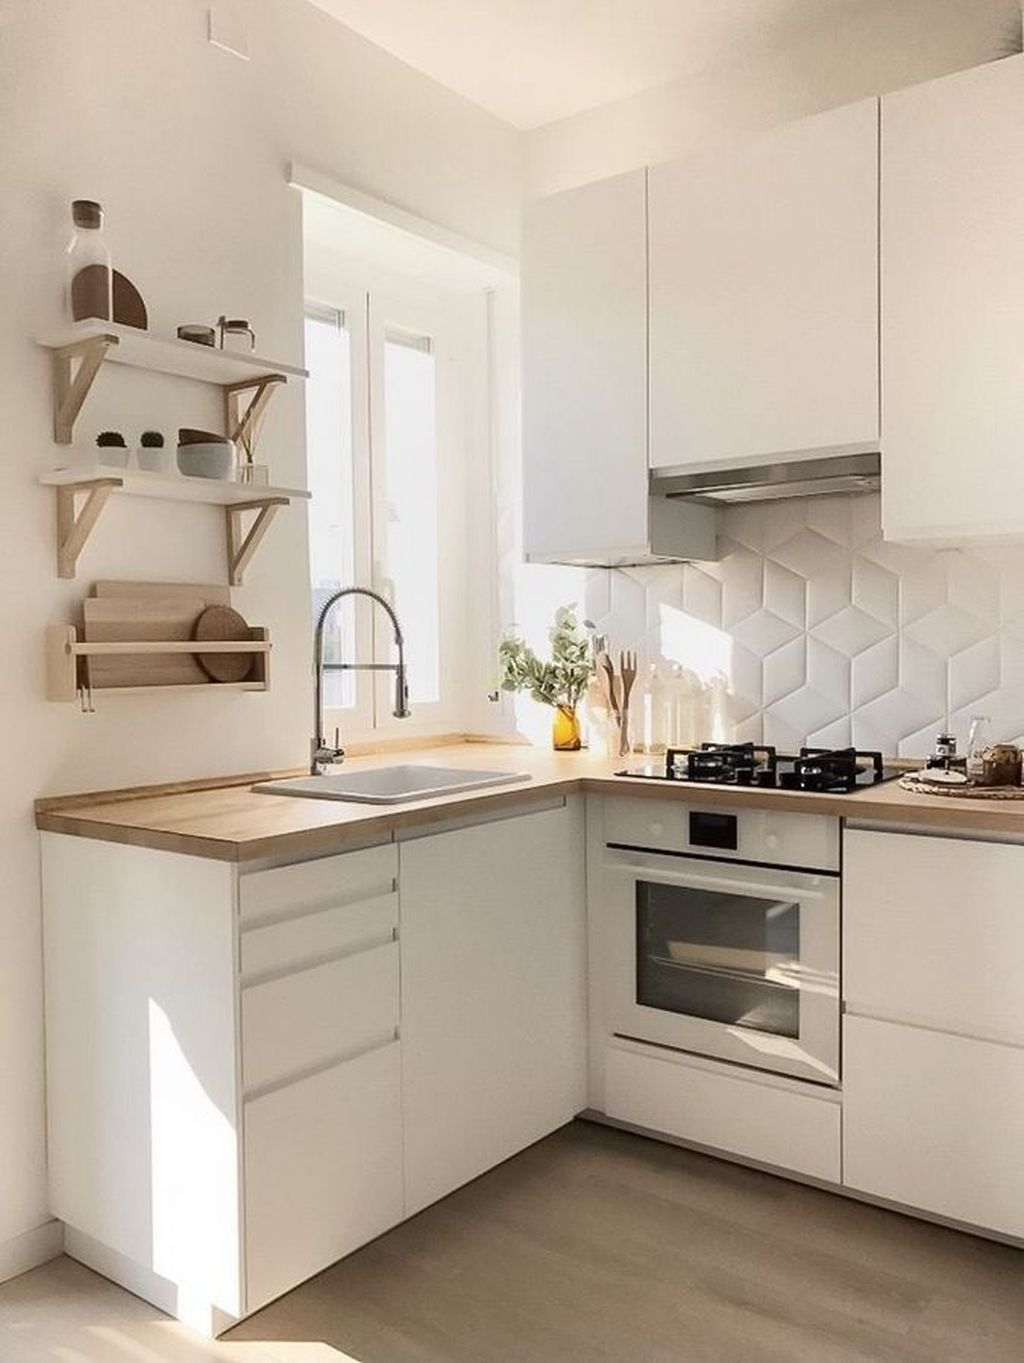 Cool 35 Amazing Small Apartment Kitchen Ideas. More at ...